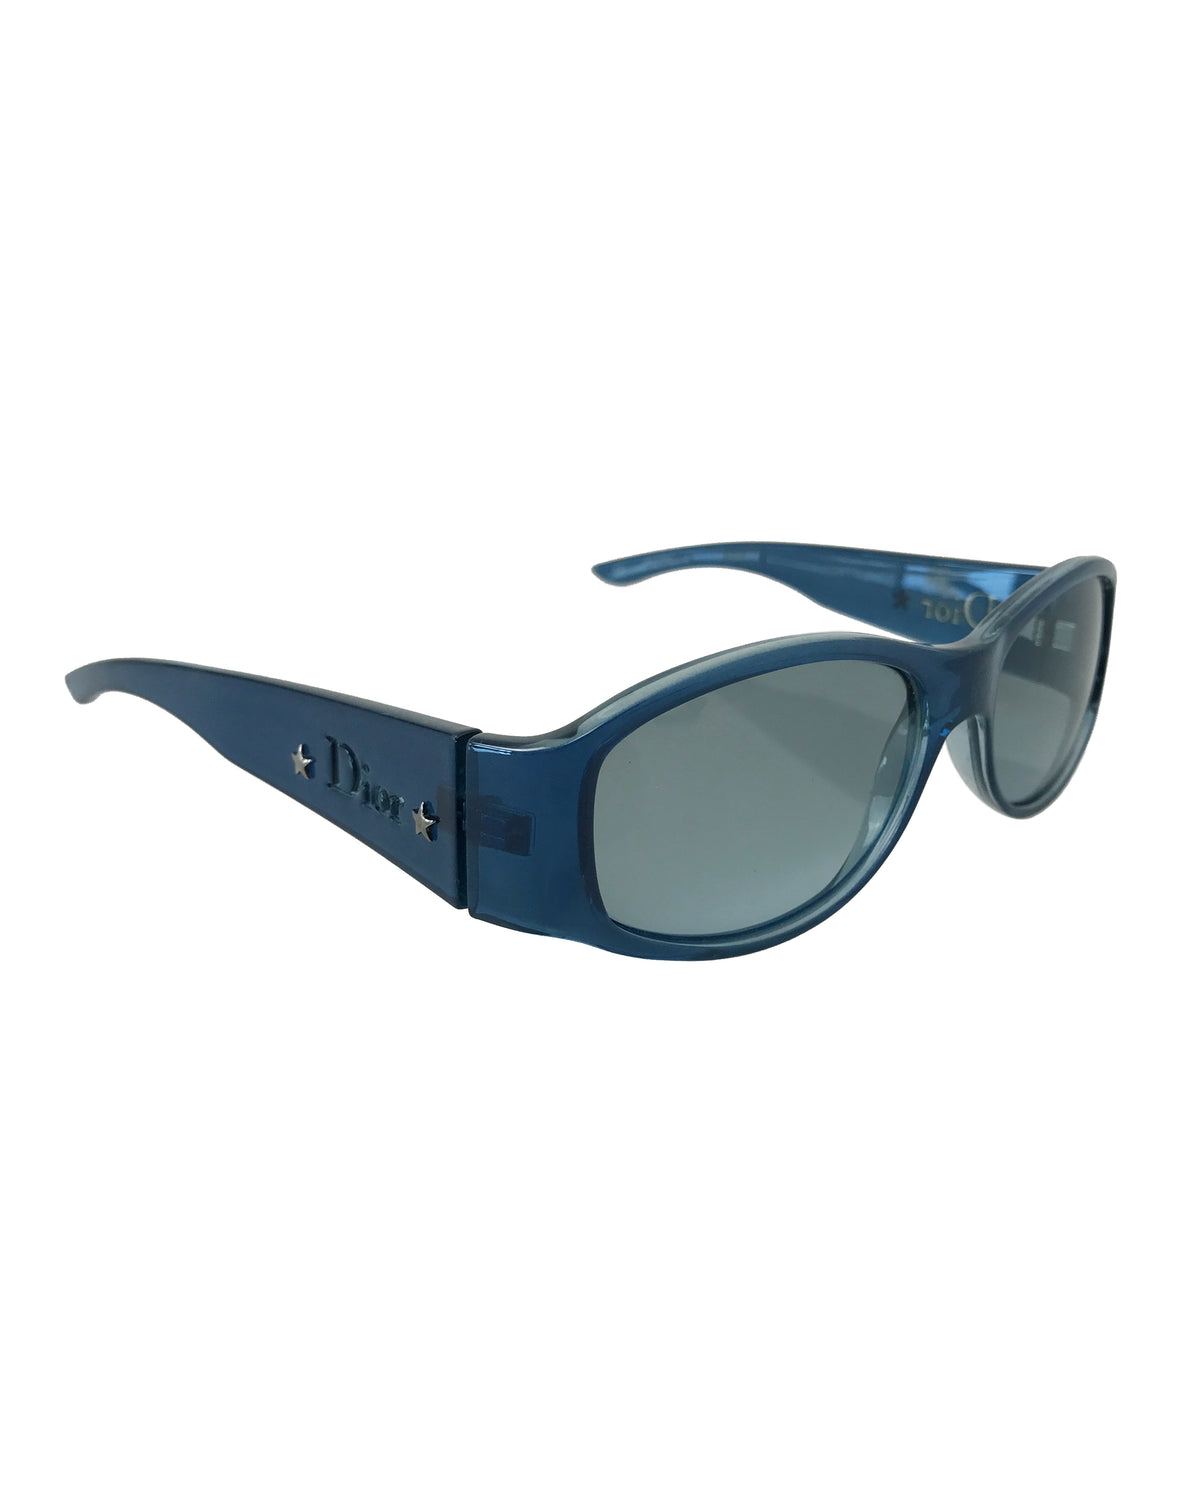 FRUIT Vintage Christian Dior 1990s Blue translucent sunglasses